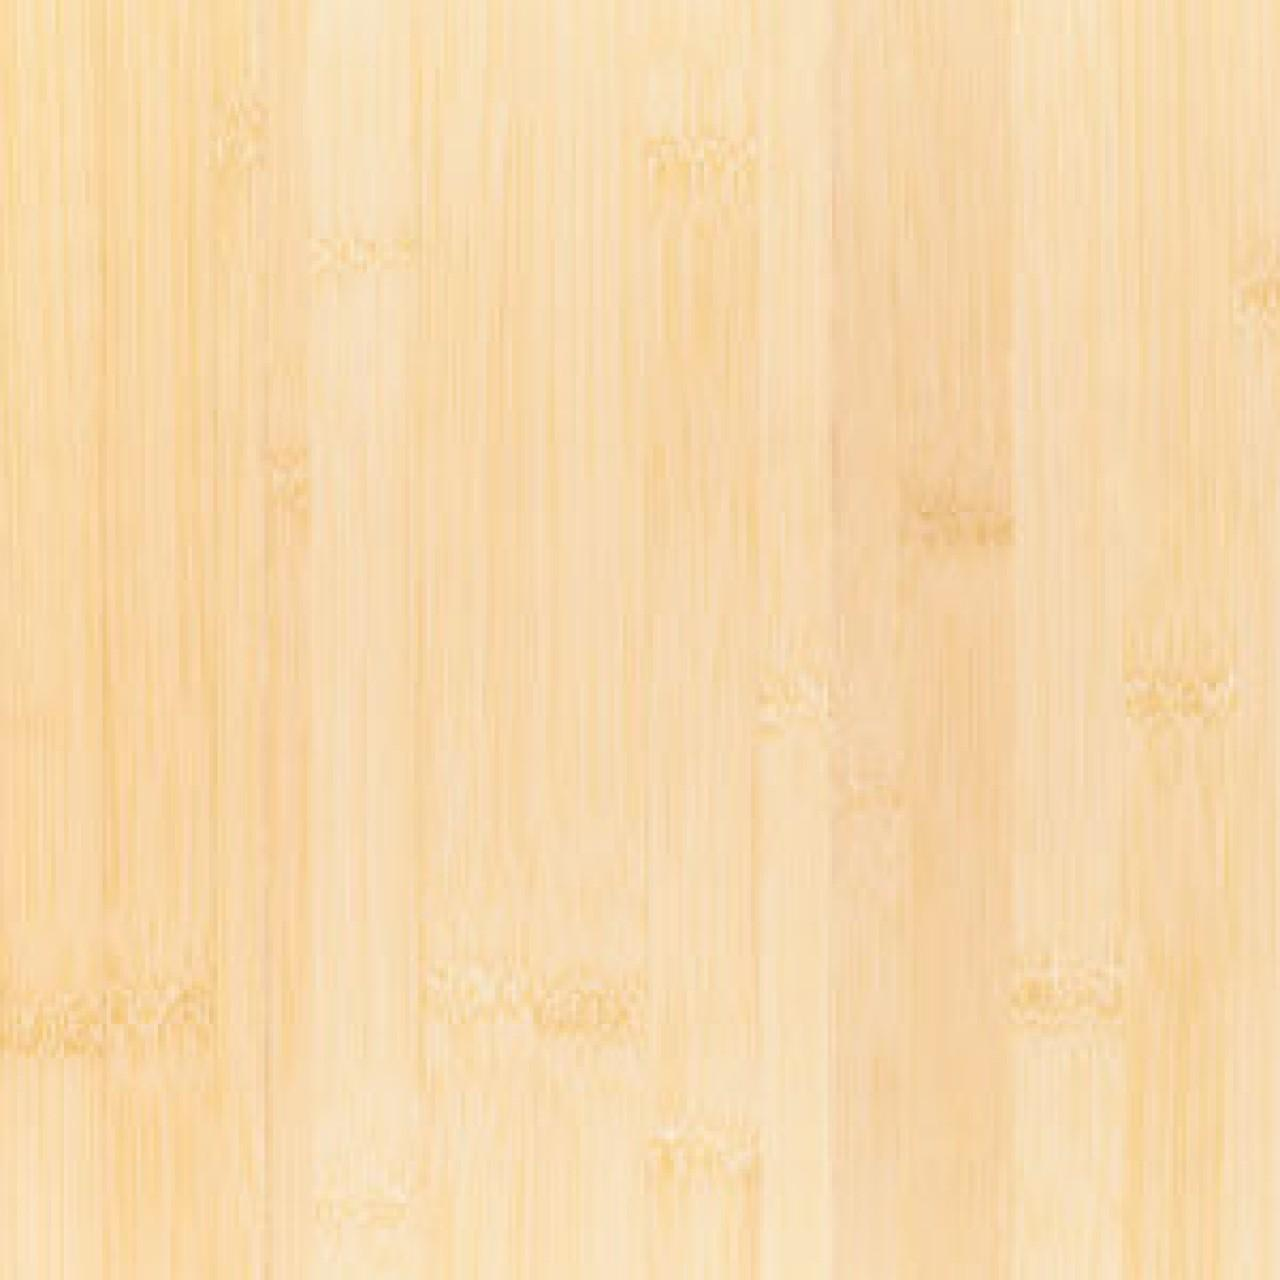 Cheap Bamboo Flooring for sale